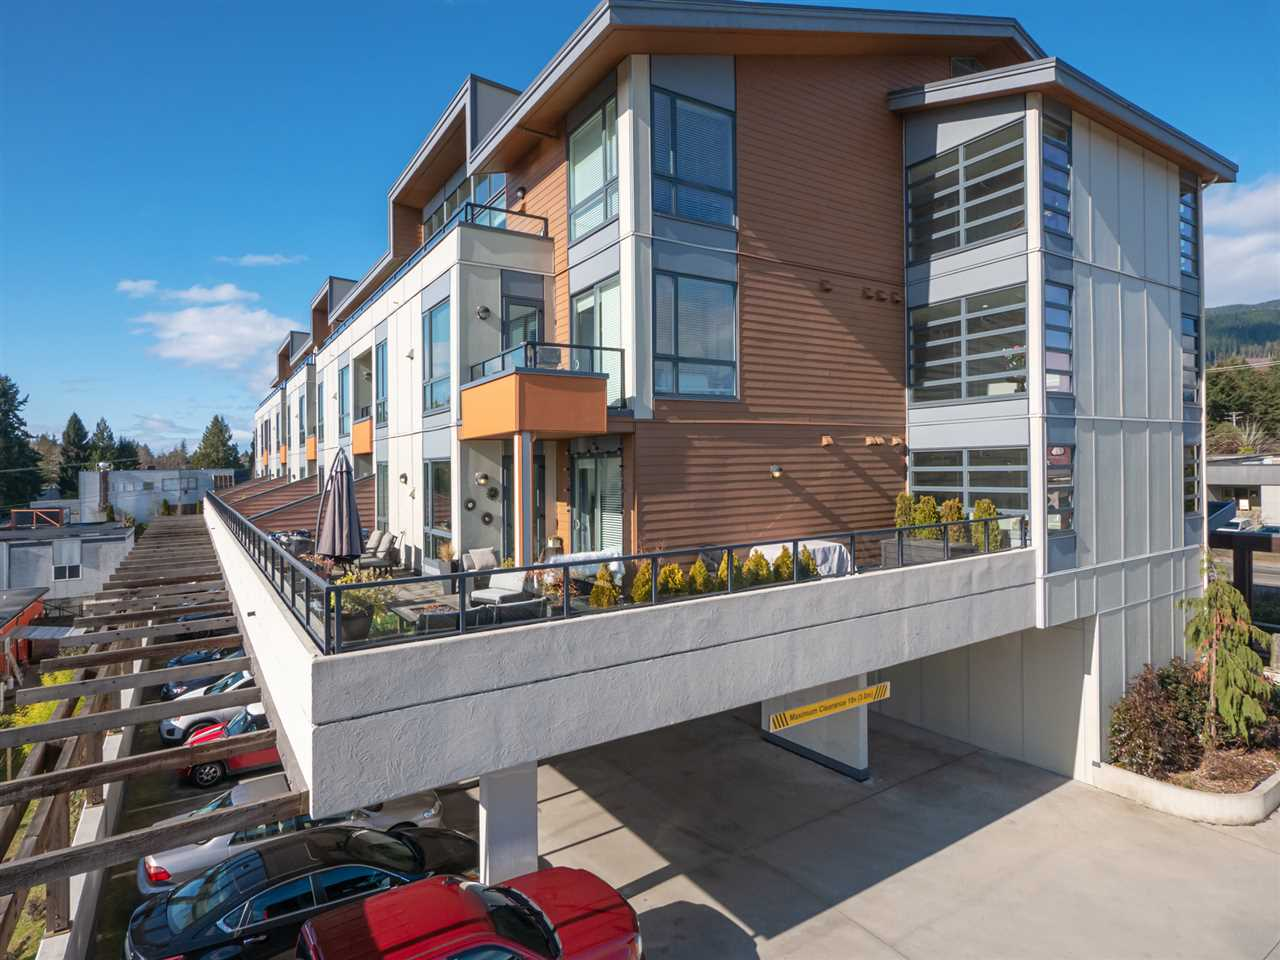 210 210 875 GIBSONS WAY - Gibsons & Area Apartment/Condo for sale, 2 Bedrooms (R2542139) - #25